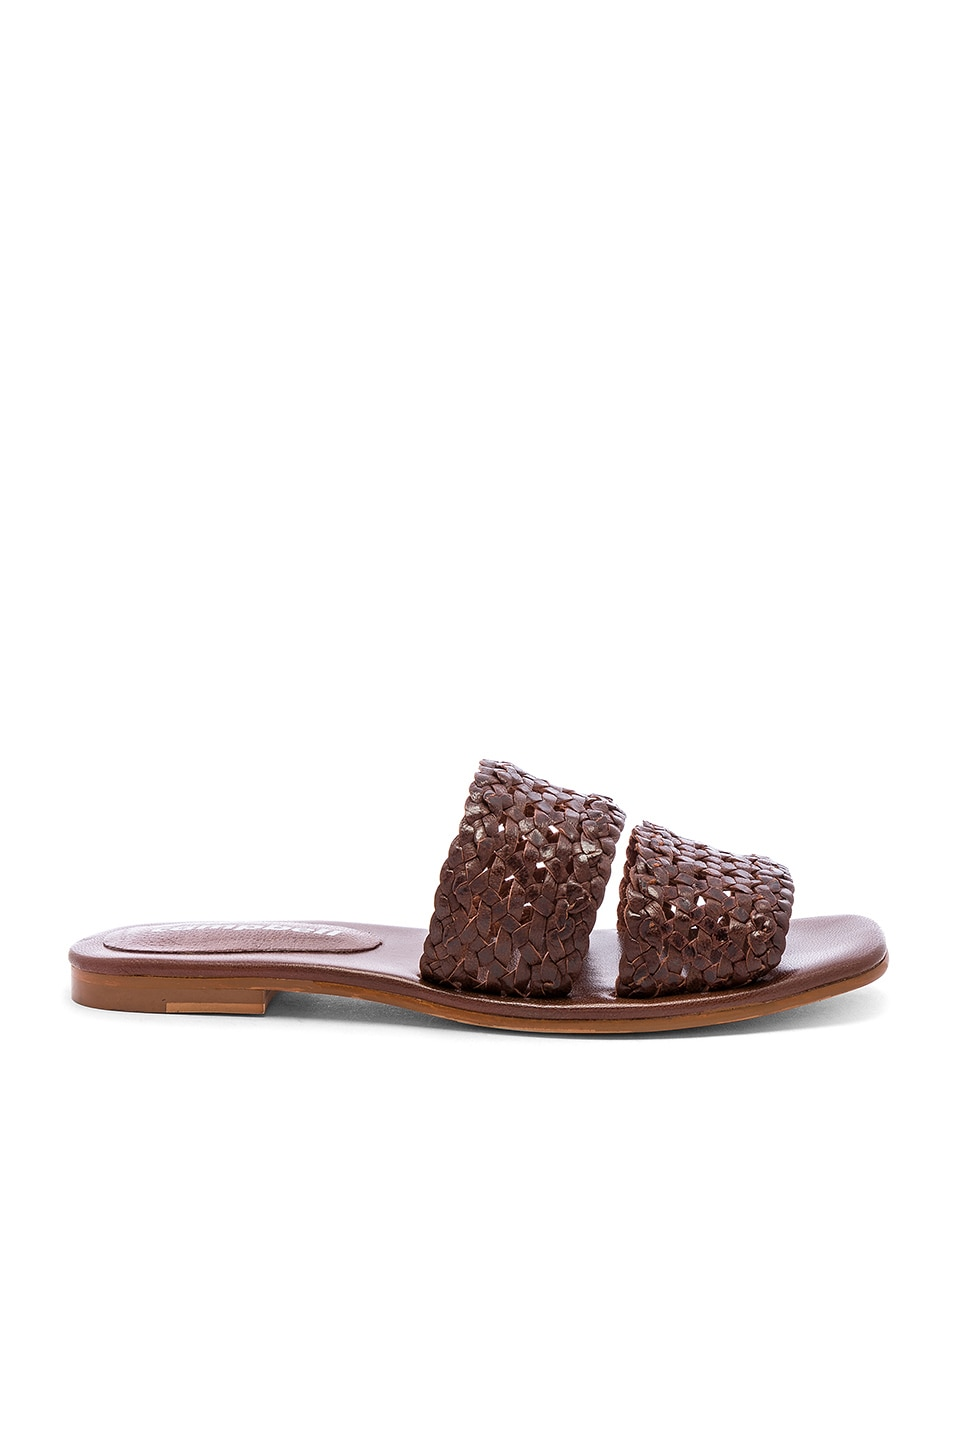 Jeffrey Campbell Rhett Sandal in Brown